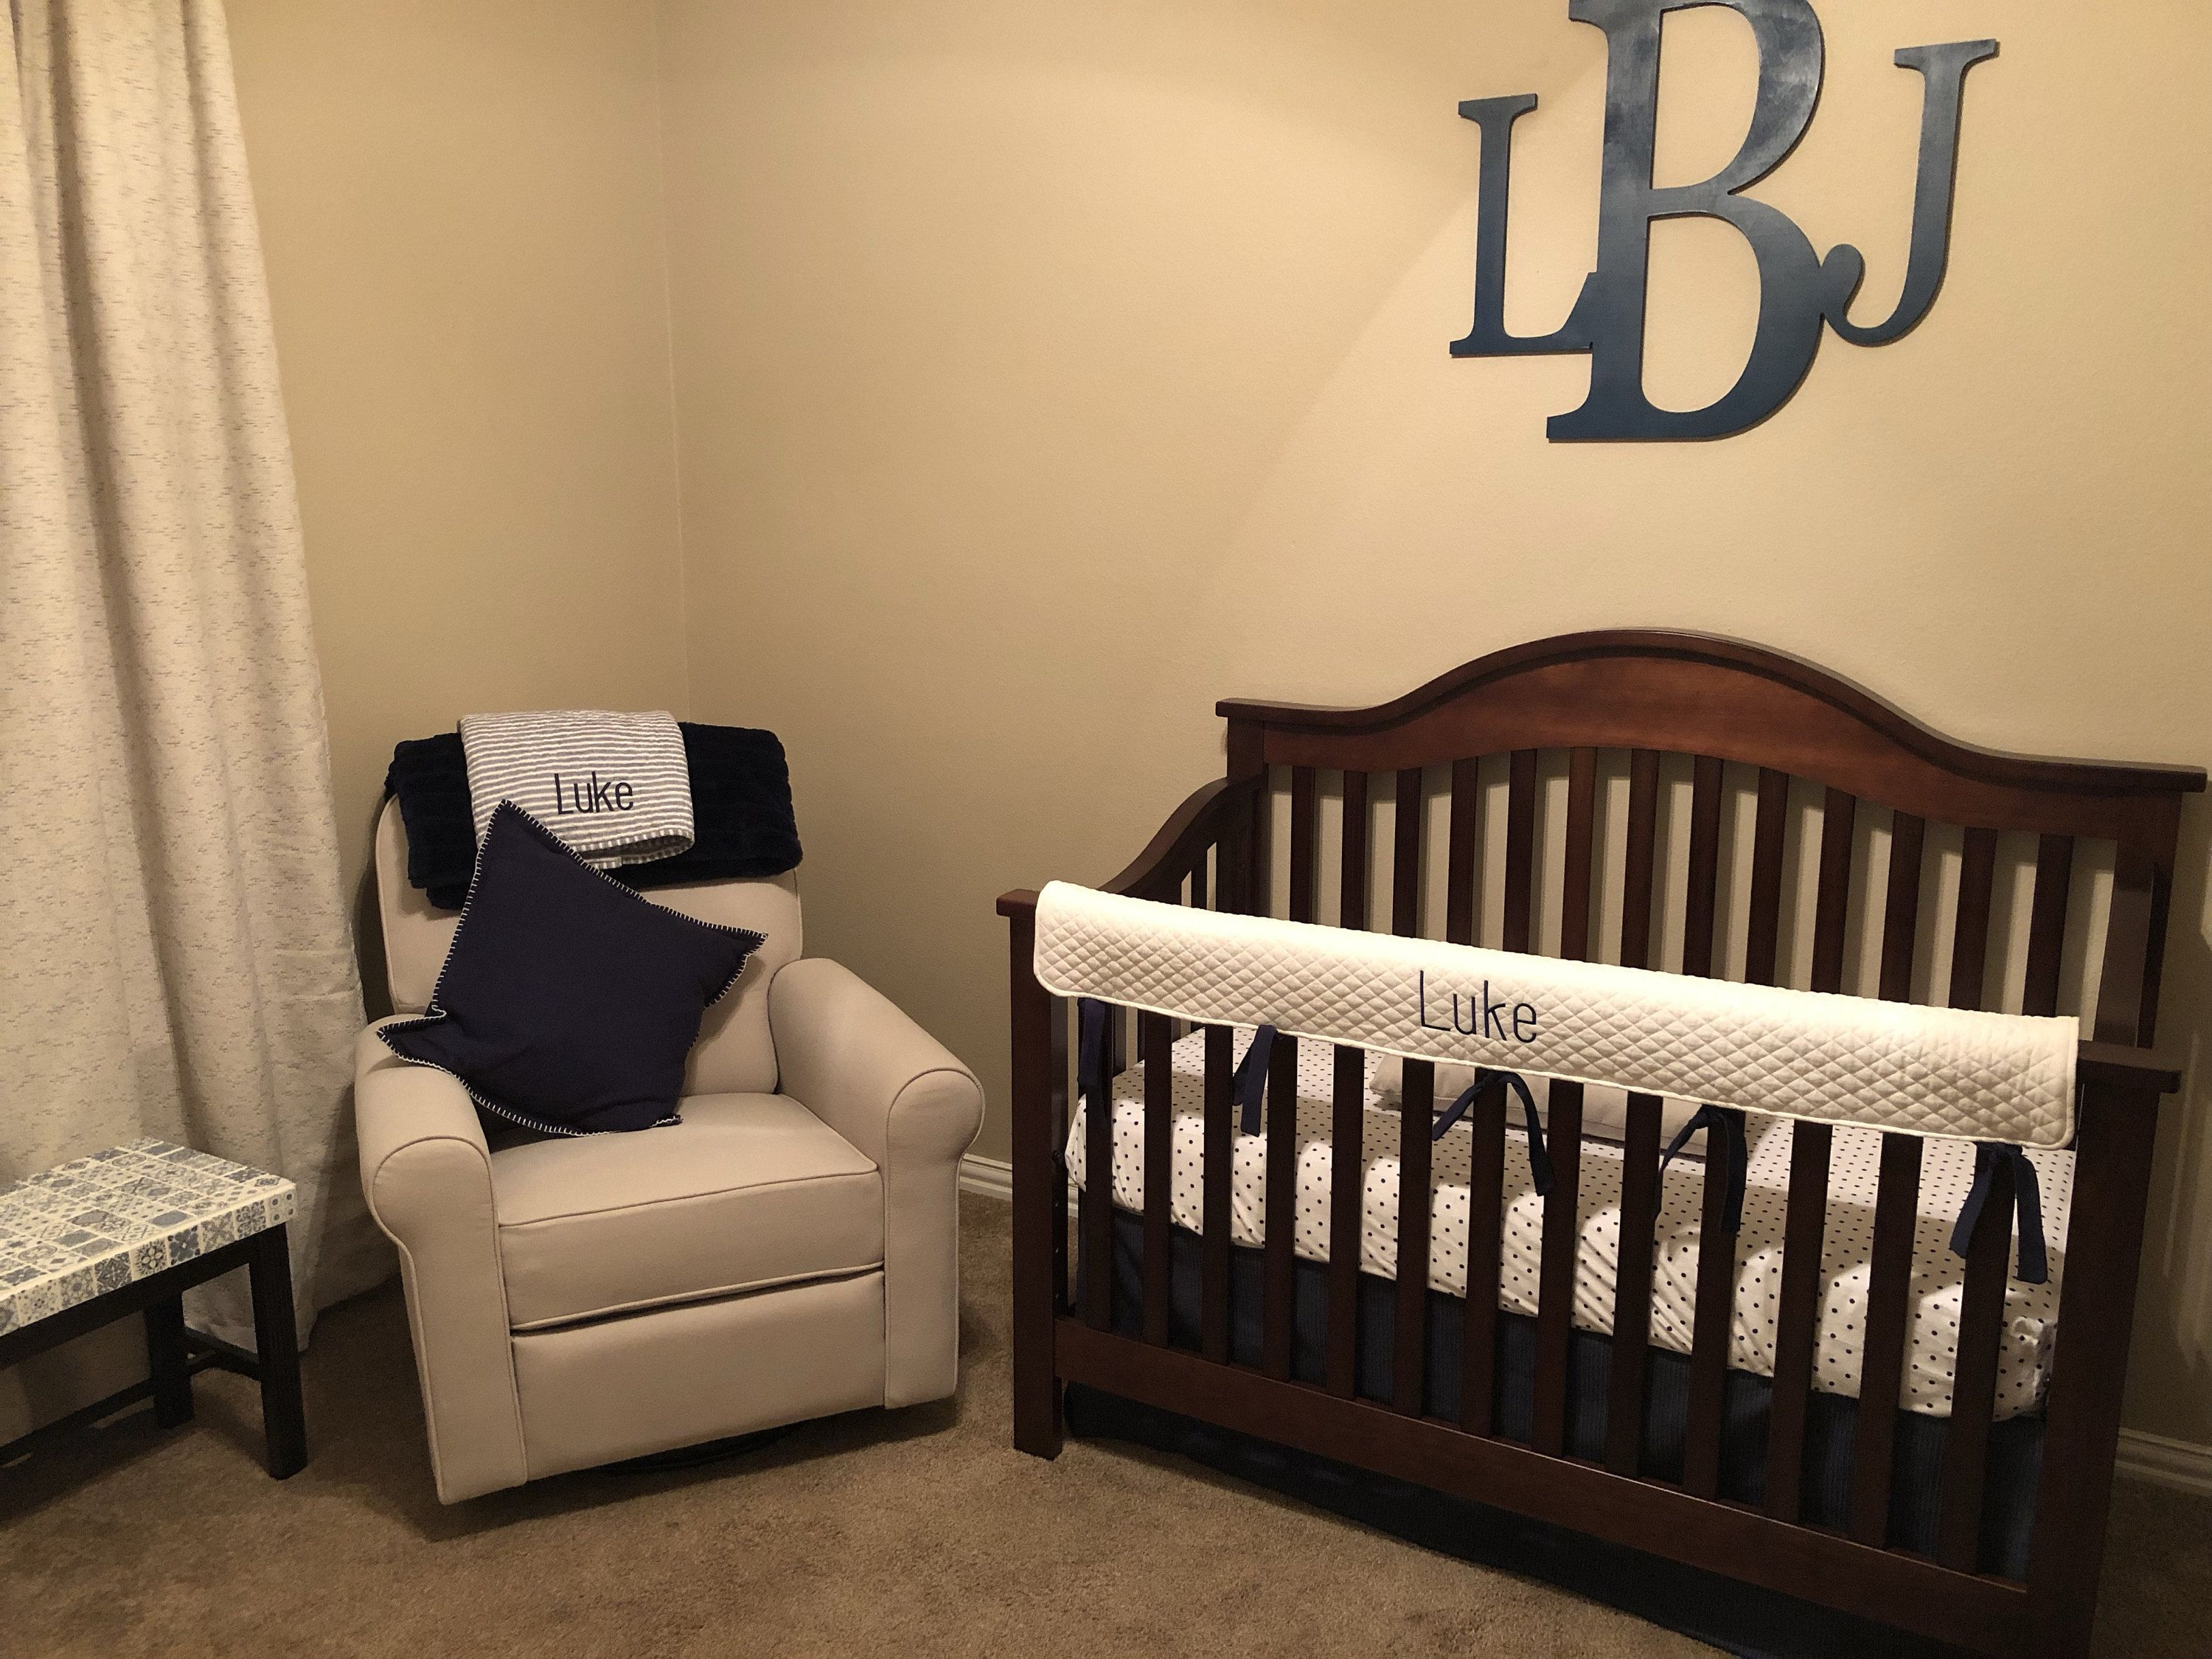 Crib rail cover white or gray name and ties or colors of